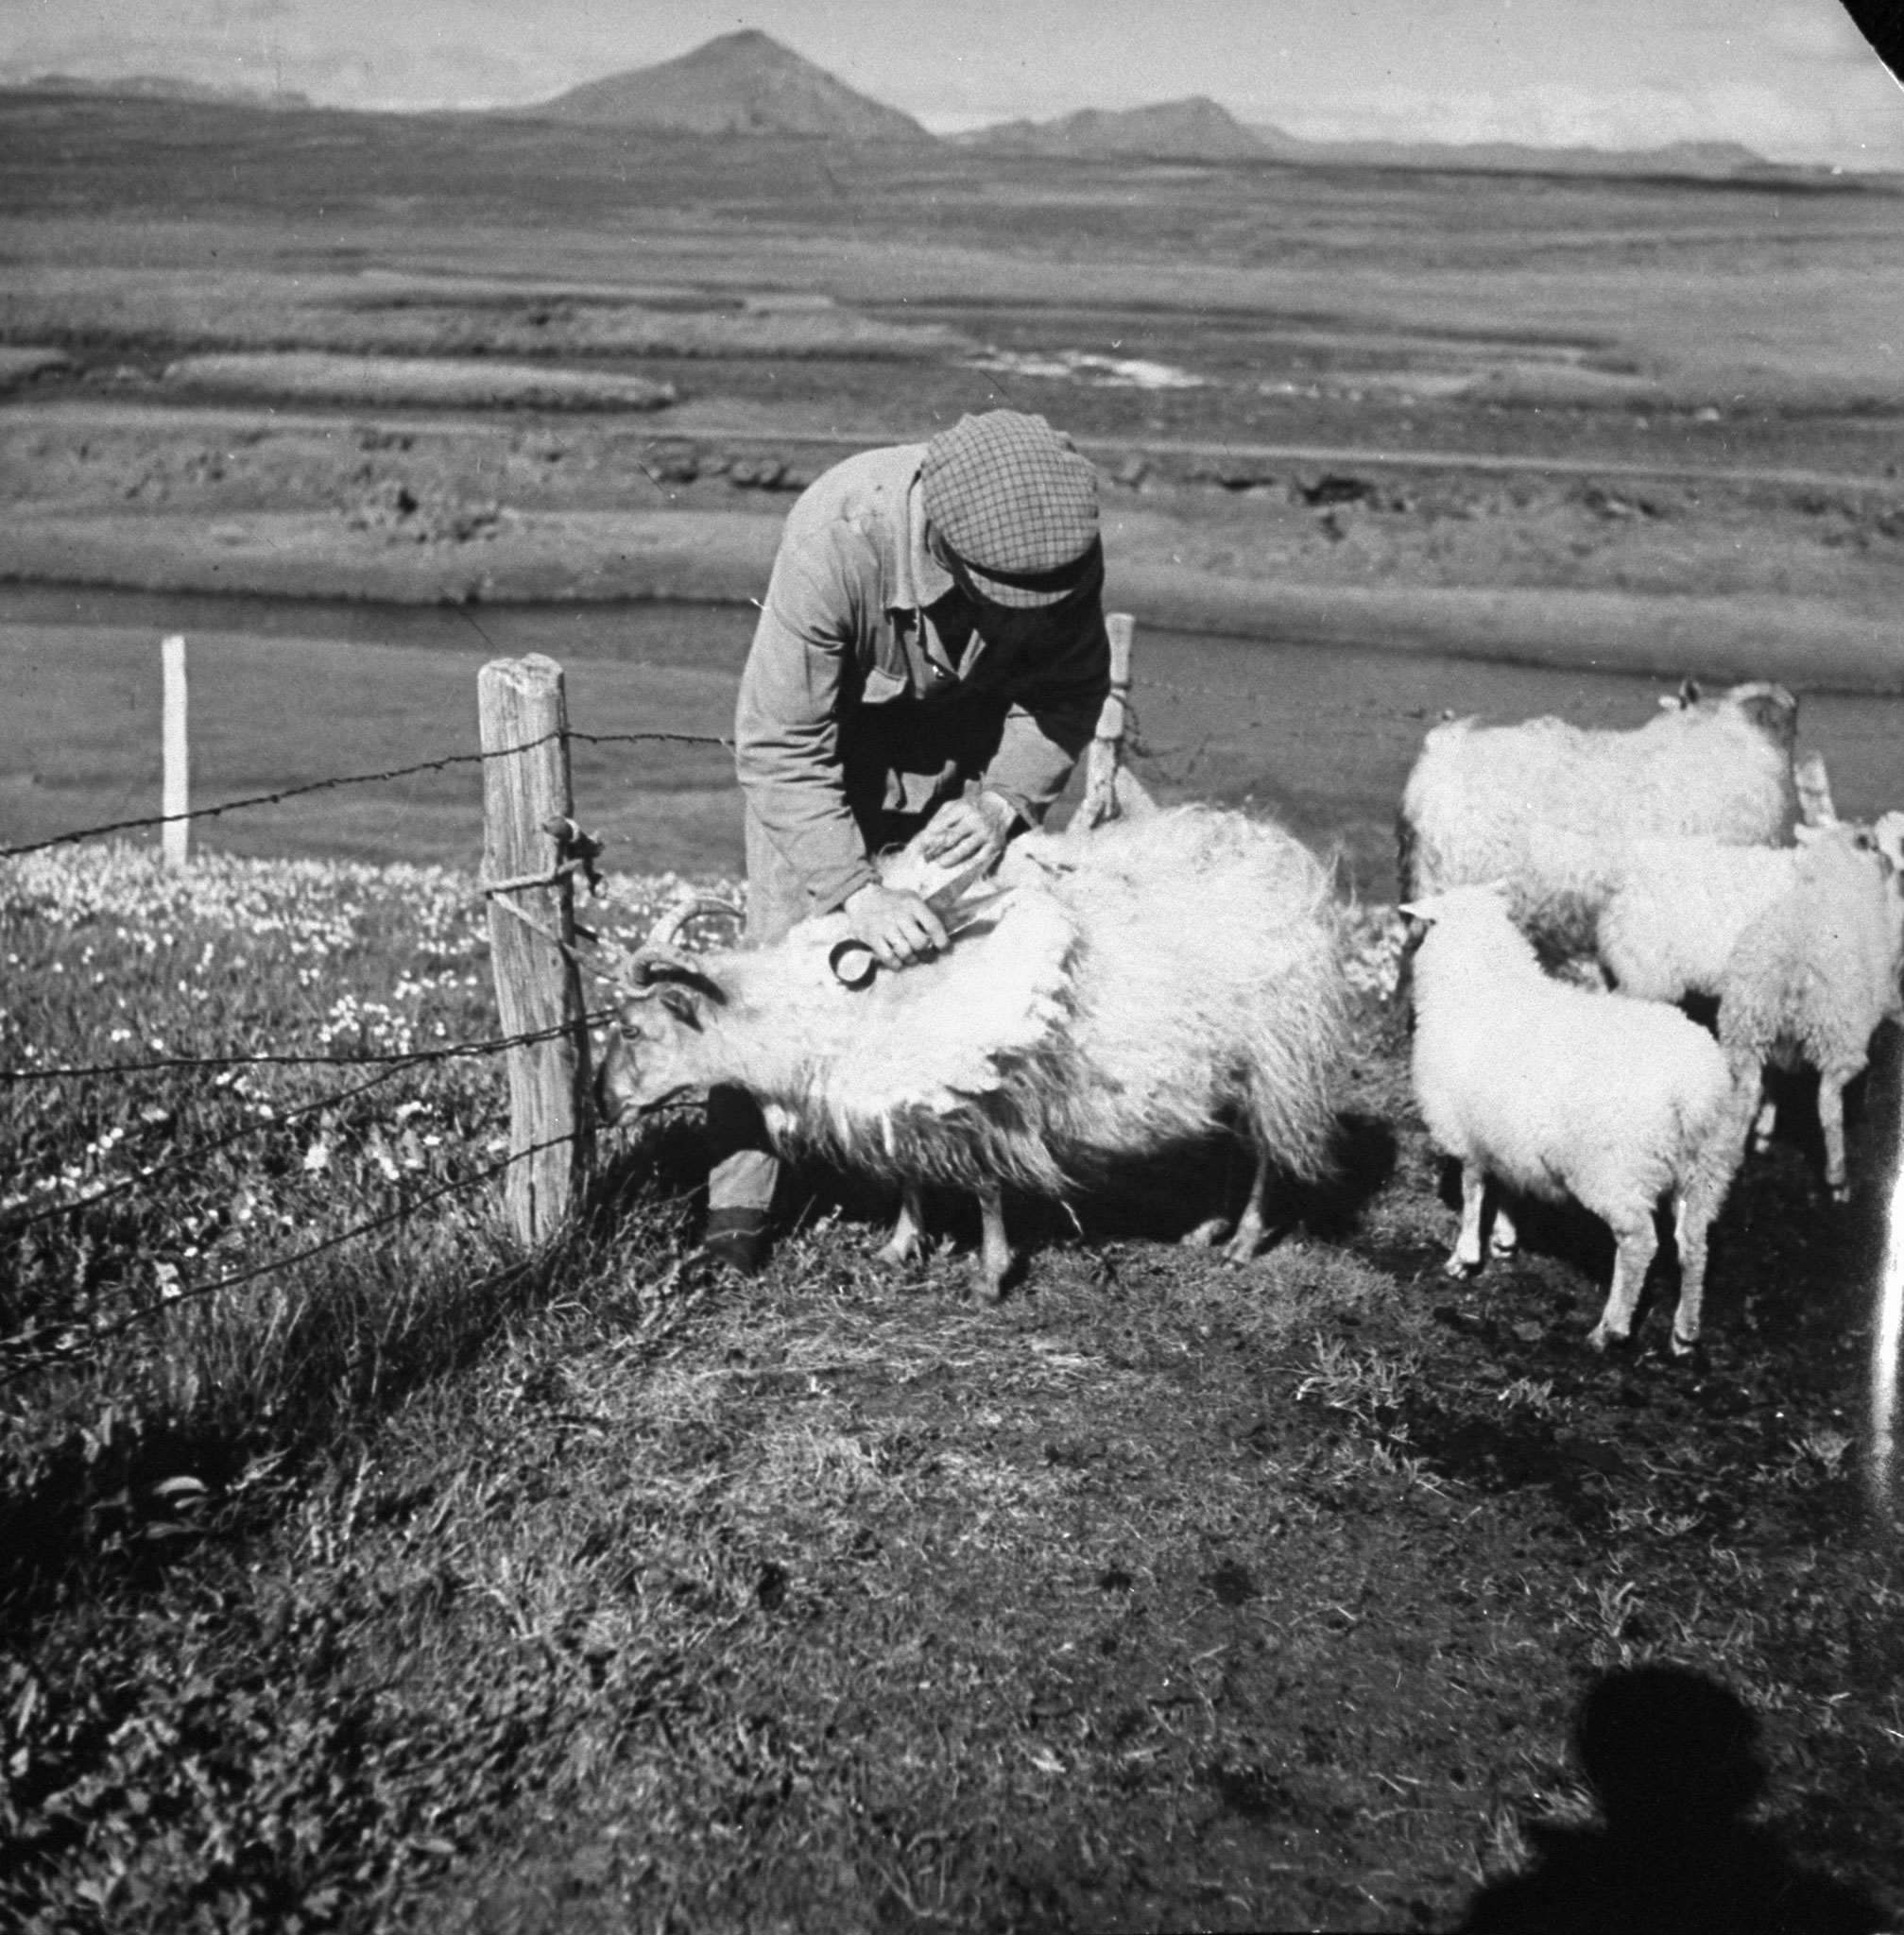 """<b>Caption from print:</b> """"Sheep, numbering about 700,000, are the basis of Iceland's agriculture, furnish 80 percent of her exports. Photo shows an Iceland peasant shearing his sheep. During the summer, the sheep graze in complete freedom in the mountains and grass covered plateaus."""""""